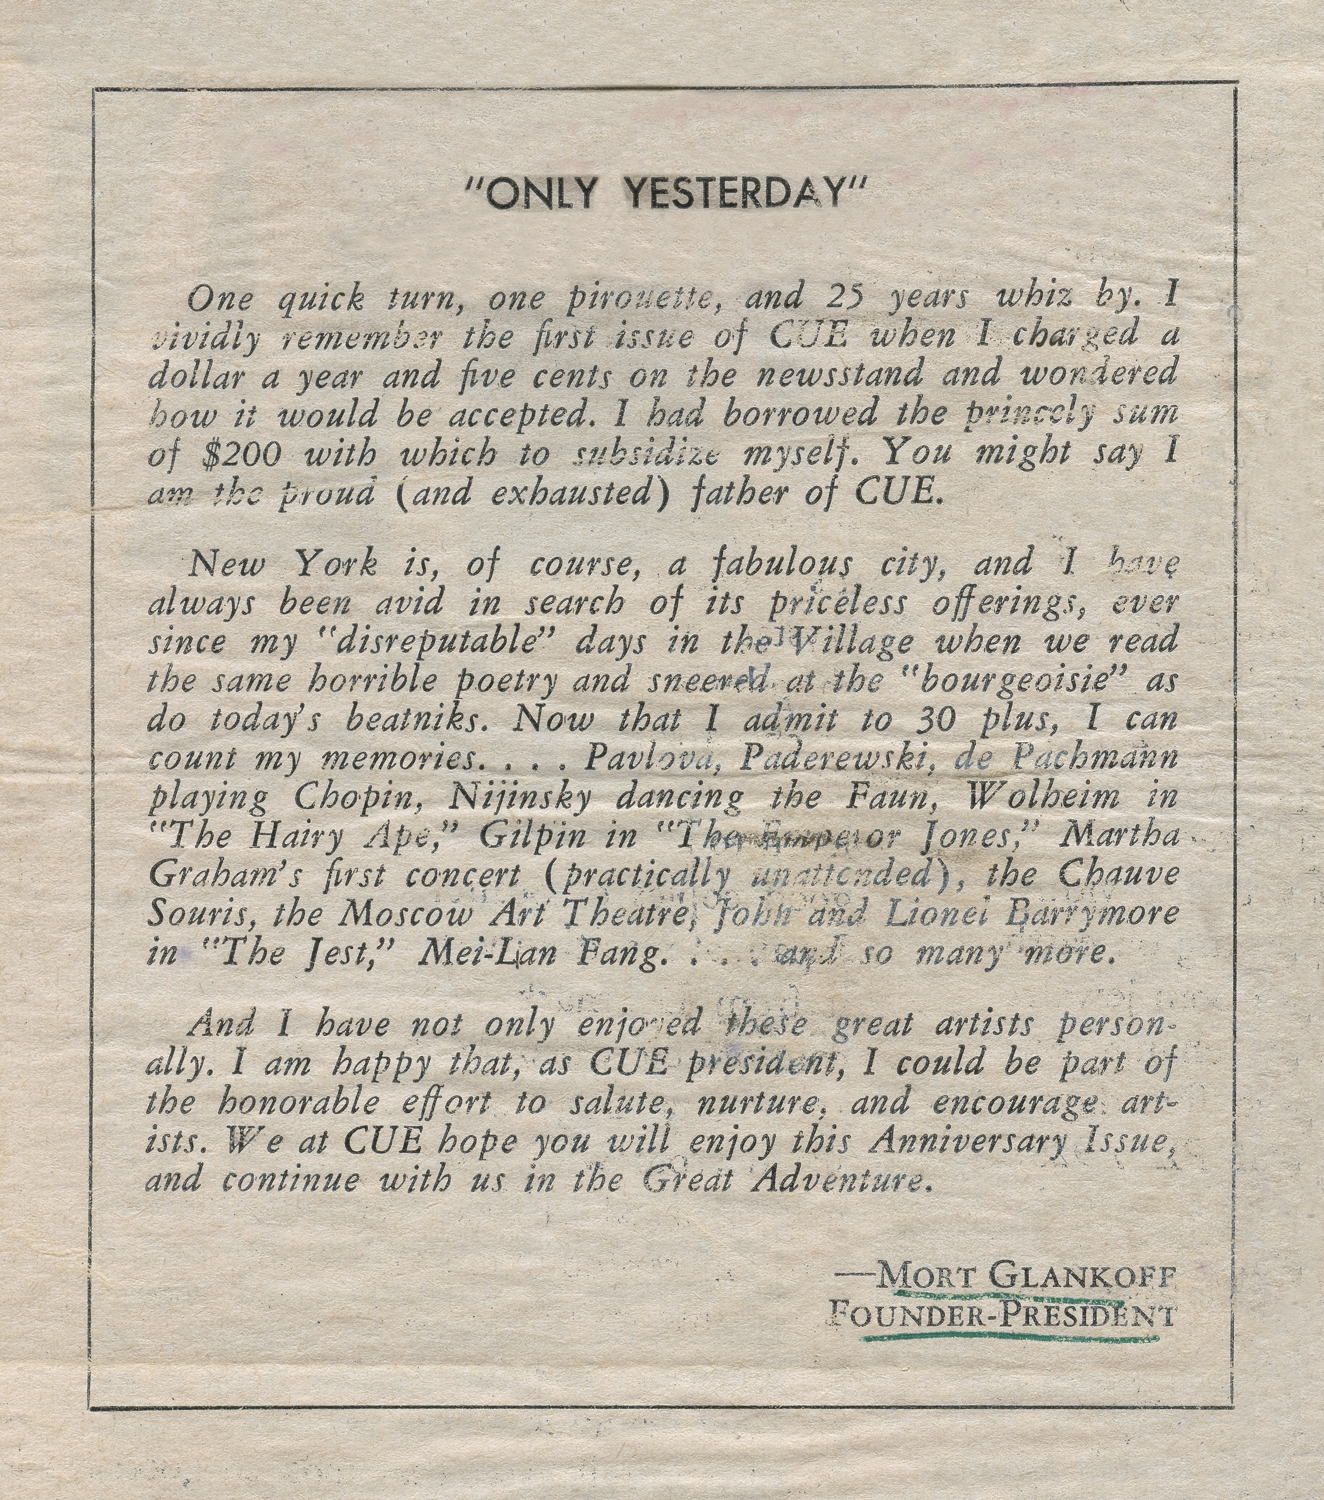 MORT GLANKOFF  CUE : 25 Year Anniversary Issue Personal Note, 1957